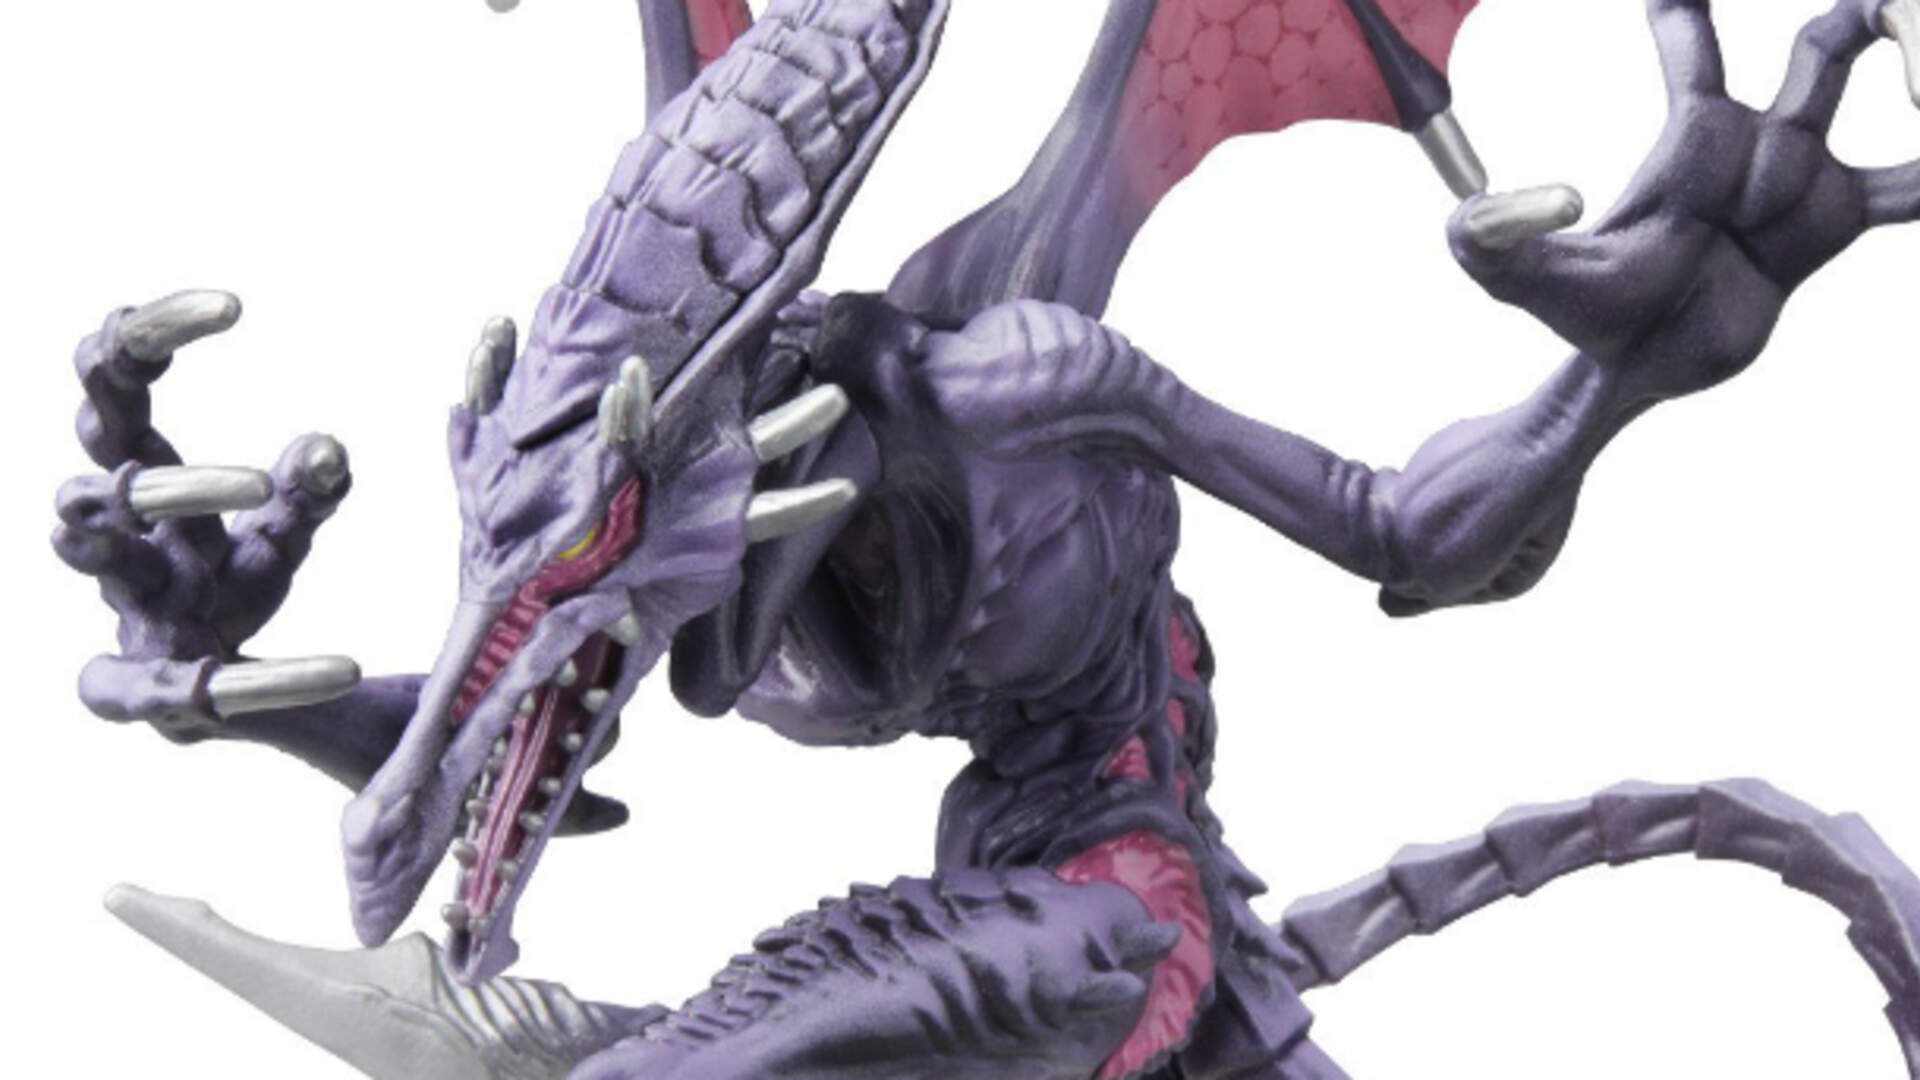 Super Smash Bros Amiibo for Ridley, Inkling, and Wolf Coming in December